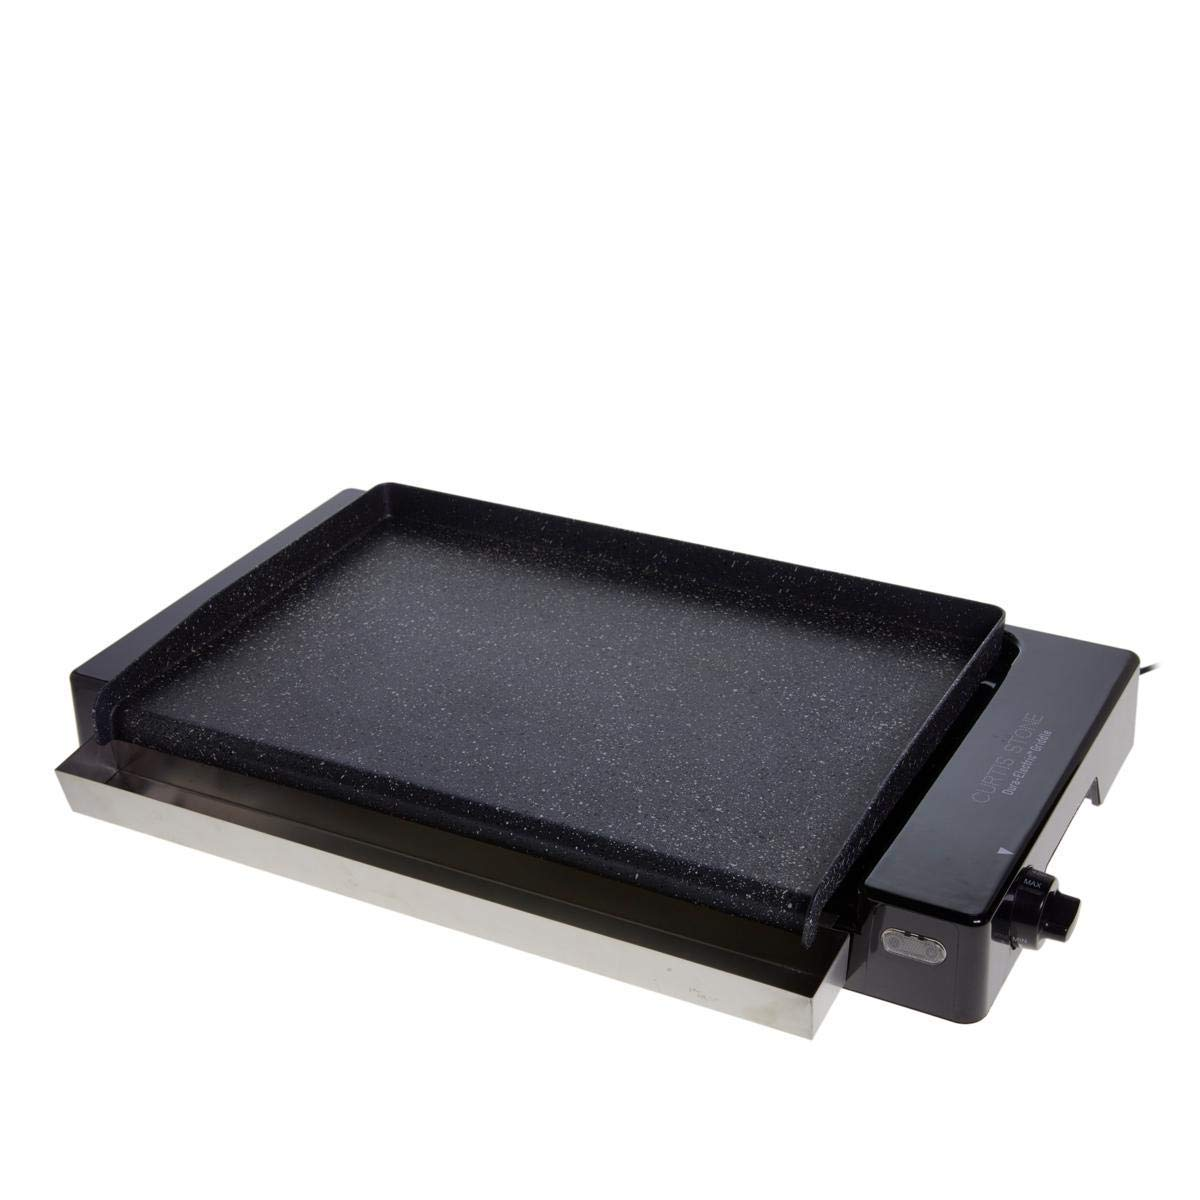 Curtis Stone Dura-Electric Nonstick Griddle Model 586-512 (Renewed)